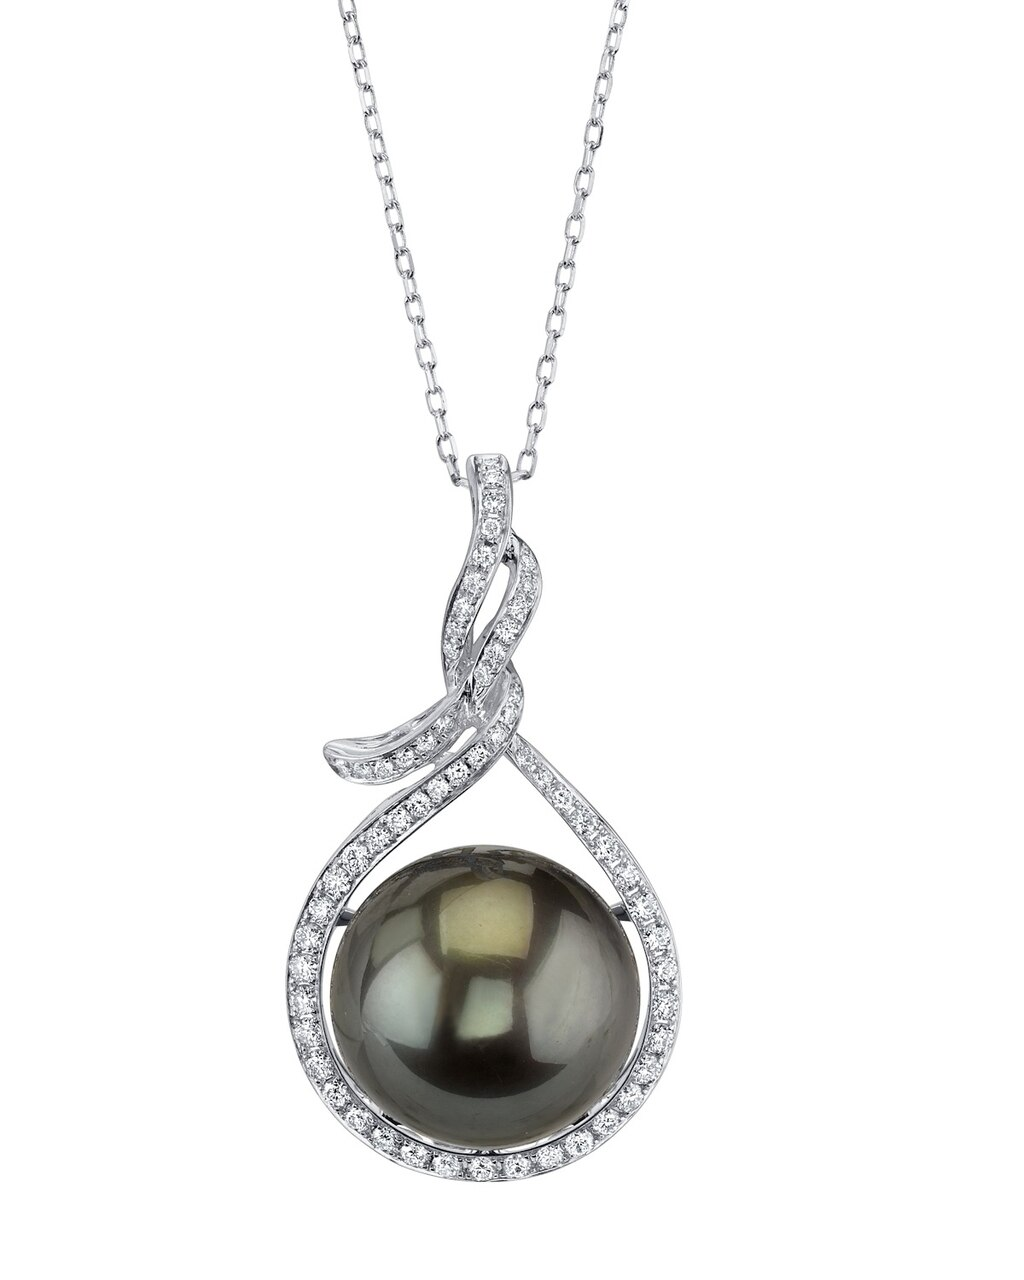 This exquisite pendant features an 14.0-15.0mm Tahitian South Sea Pearl, handpicked for its luminous luster